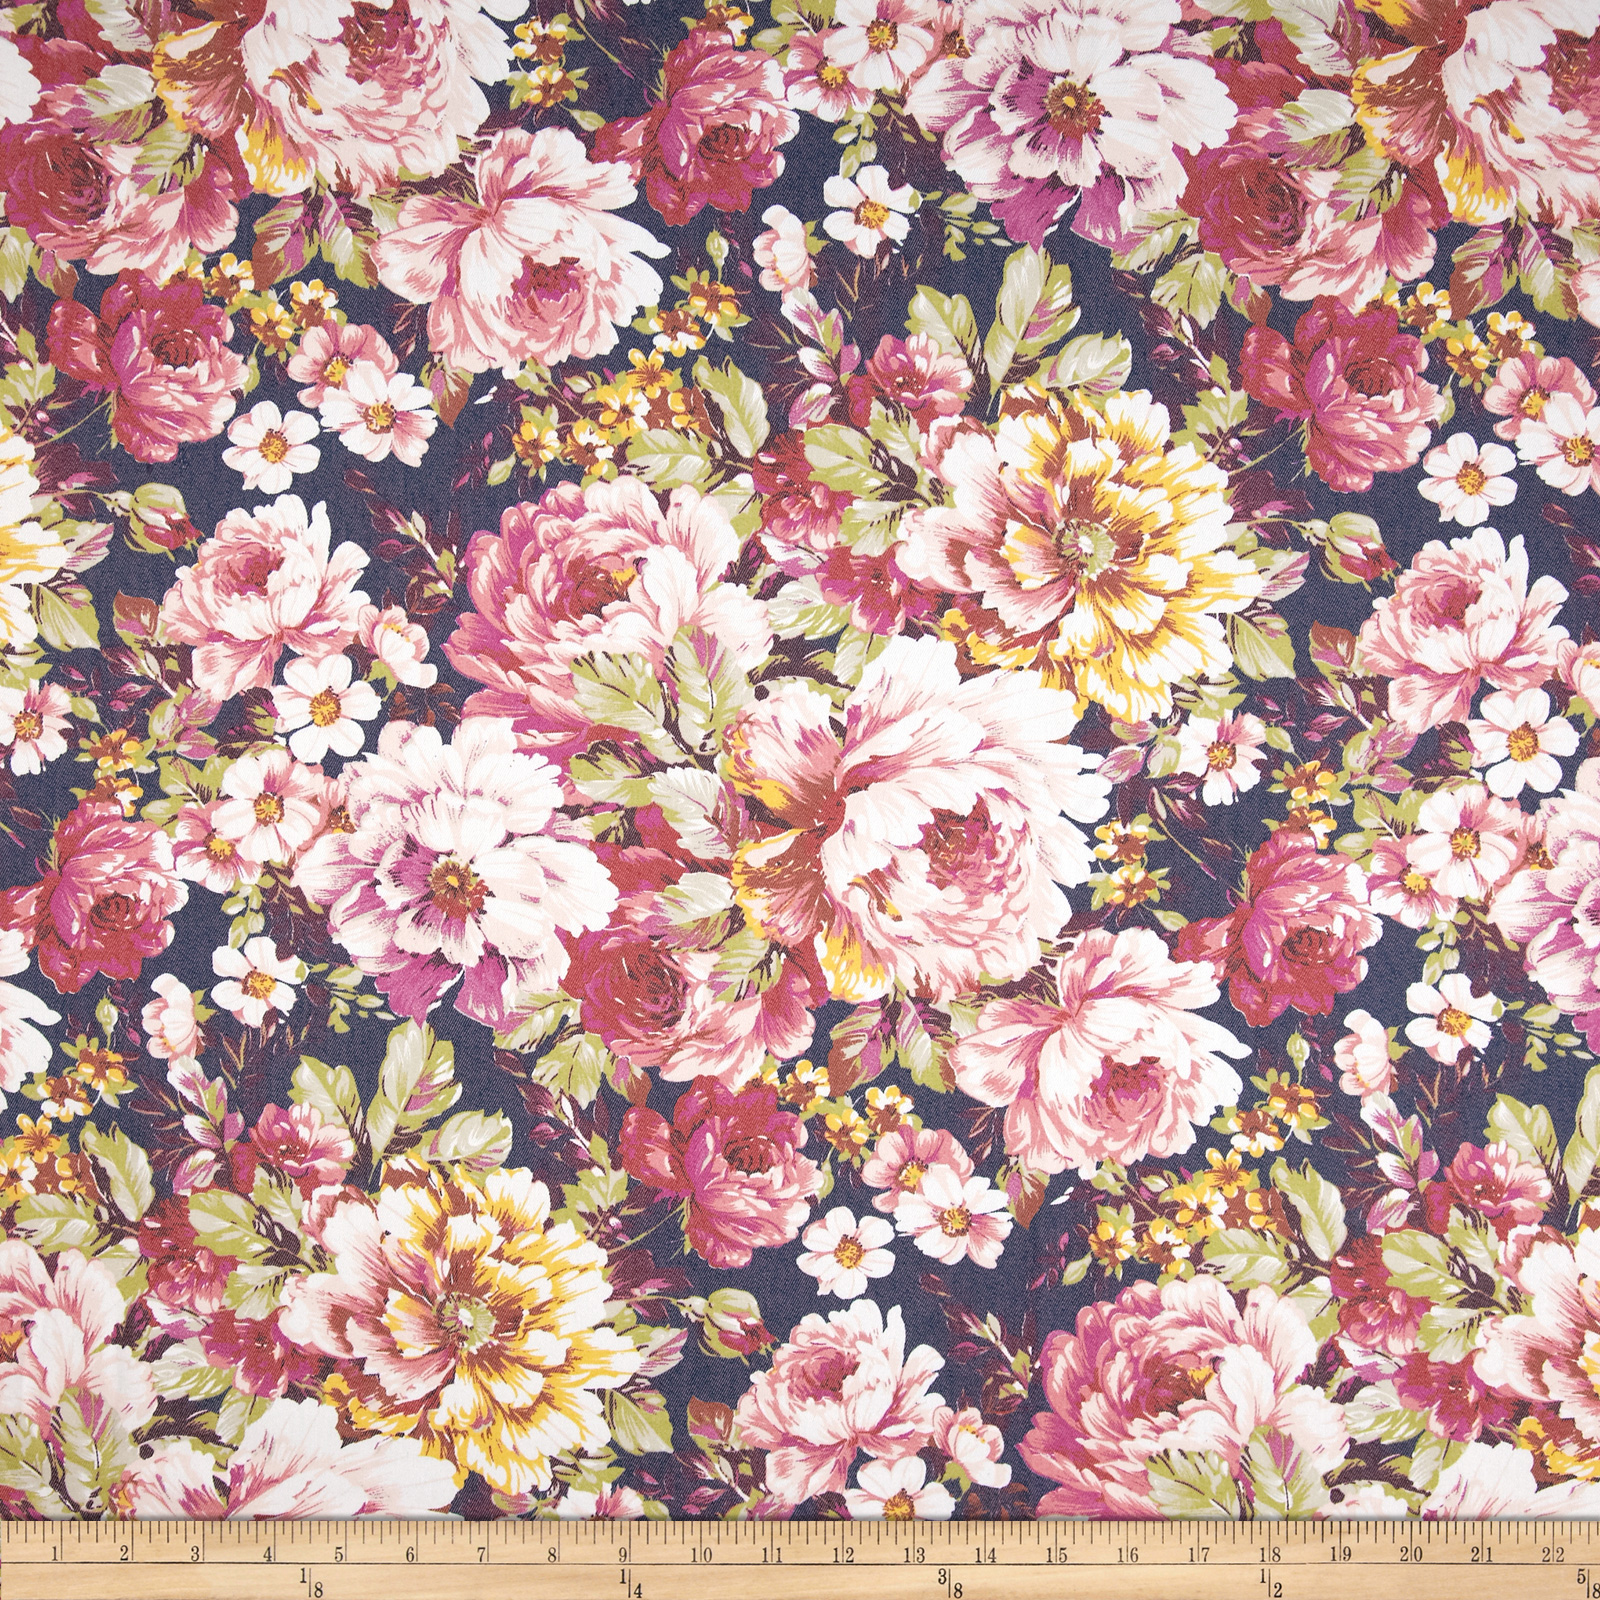 Soho Stretch Twill Floral Multi Fabric